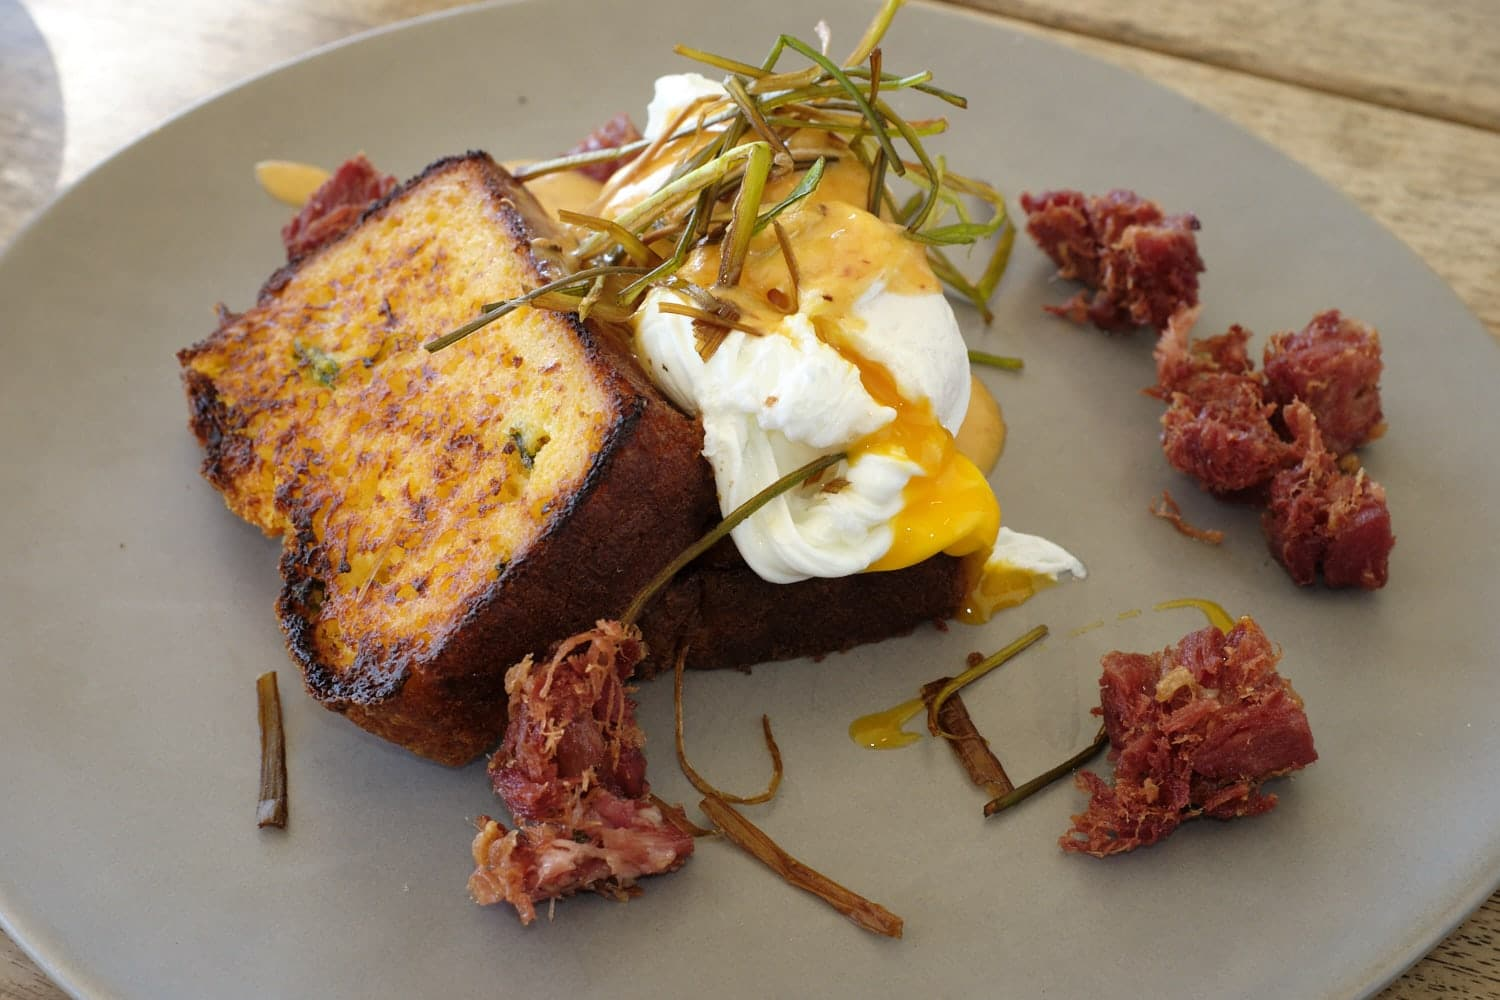 Updated: Perth's Top 7 Chilli Breakfasts